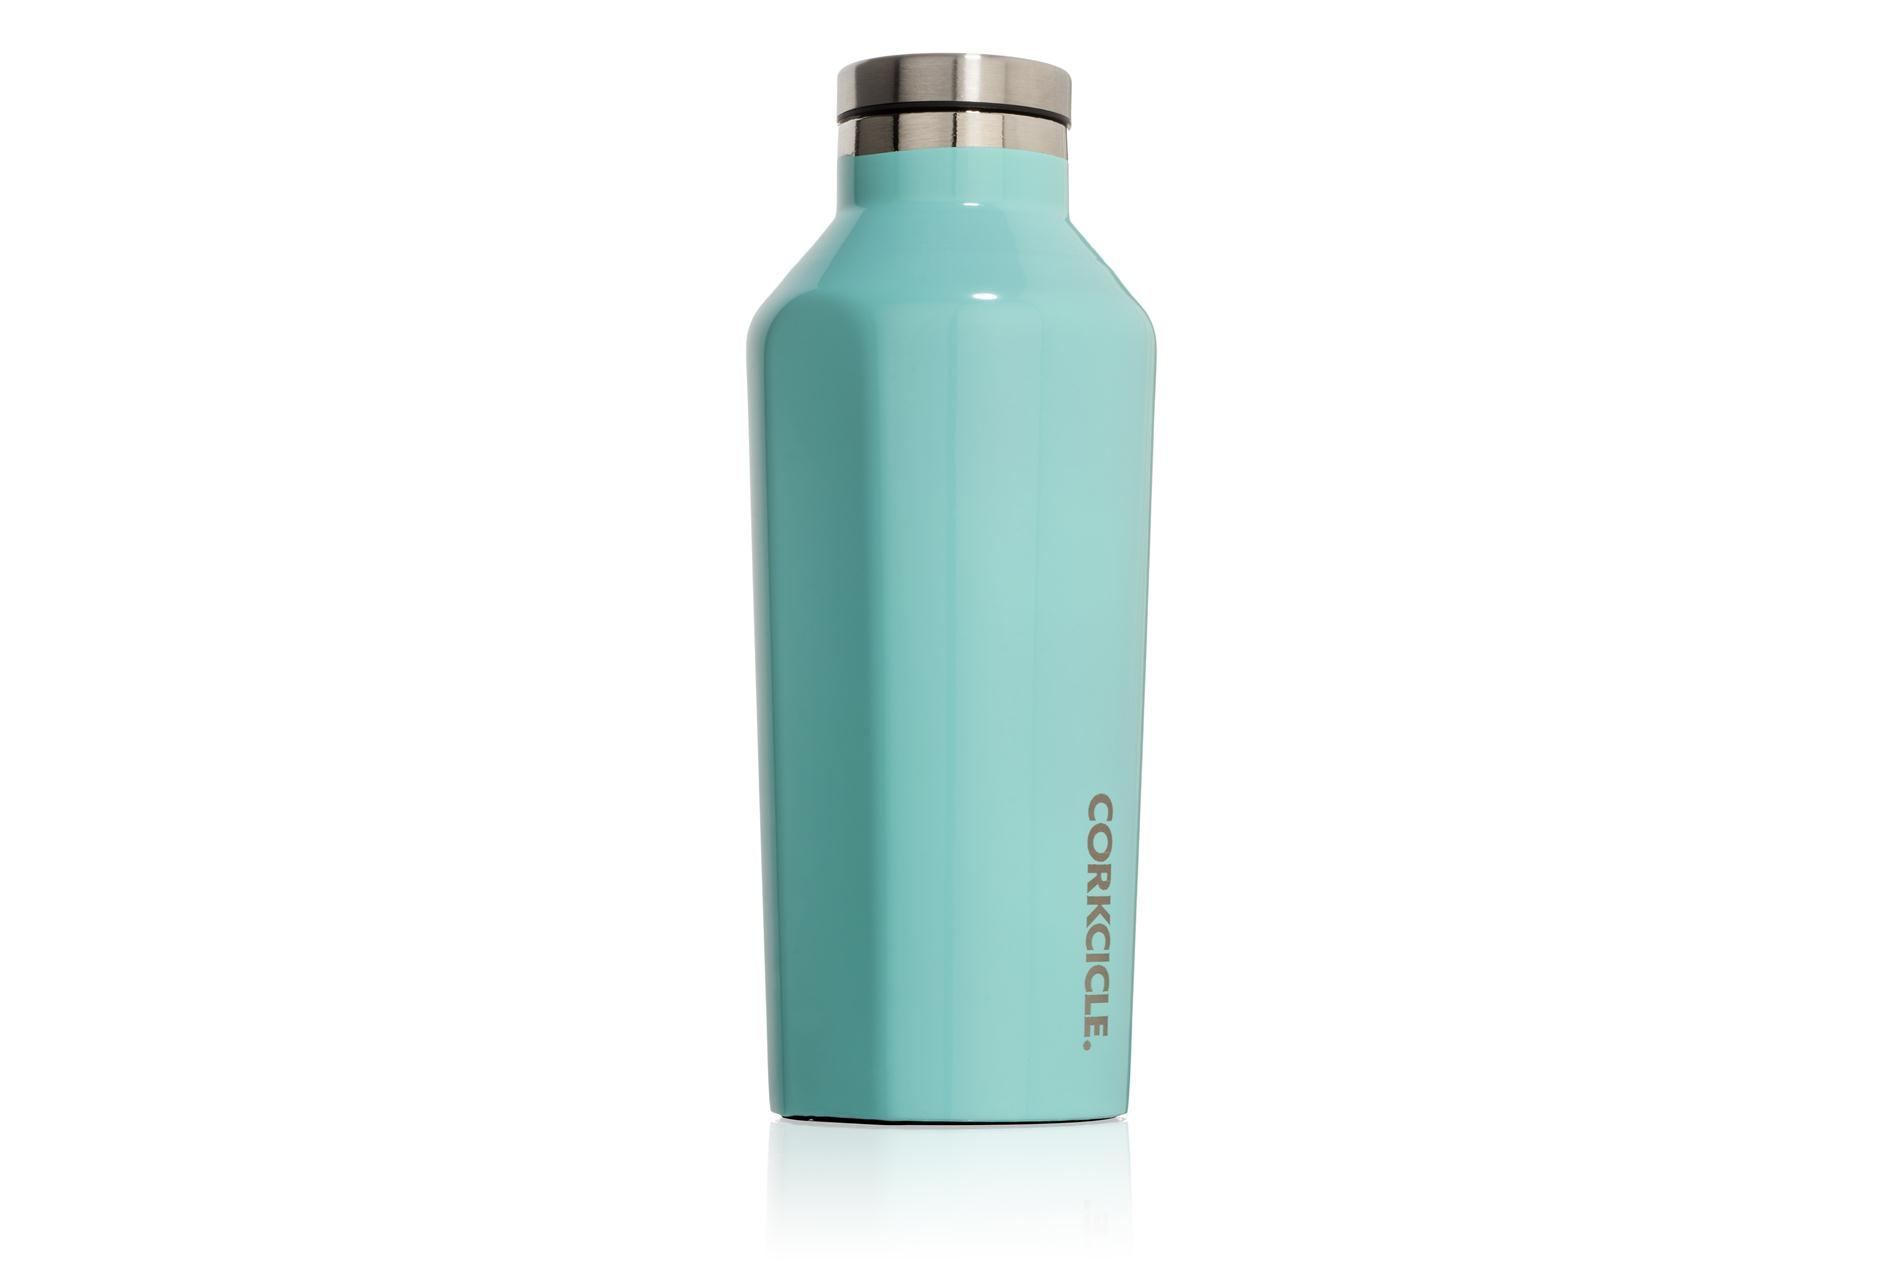 Corkcicle Trinkflasche / Thermo Isolierflasche Gloss Turquoise 265 ml Gloss